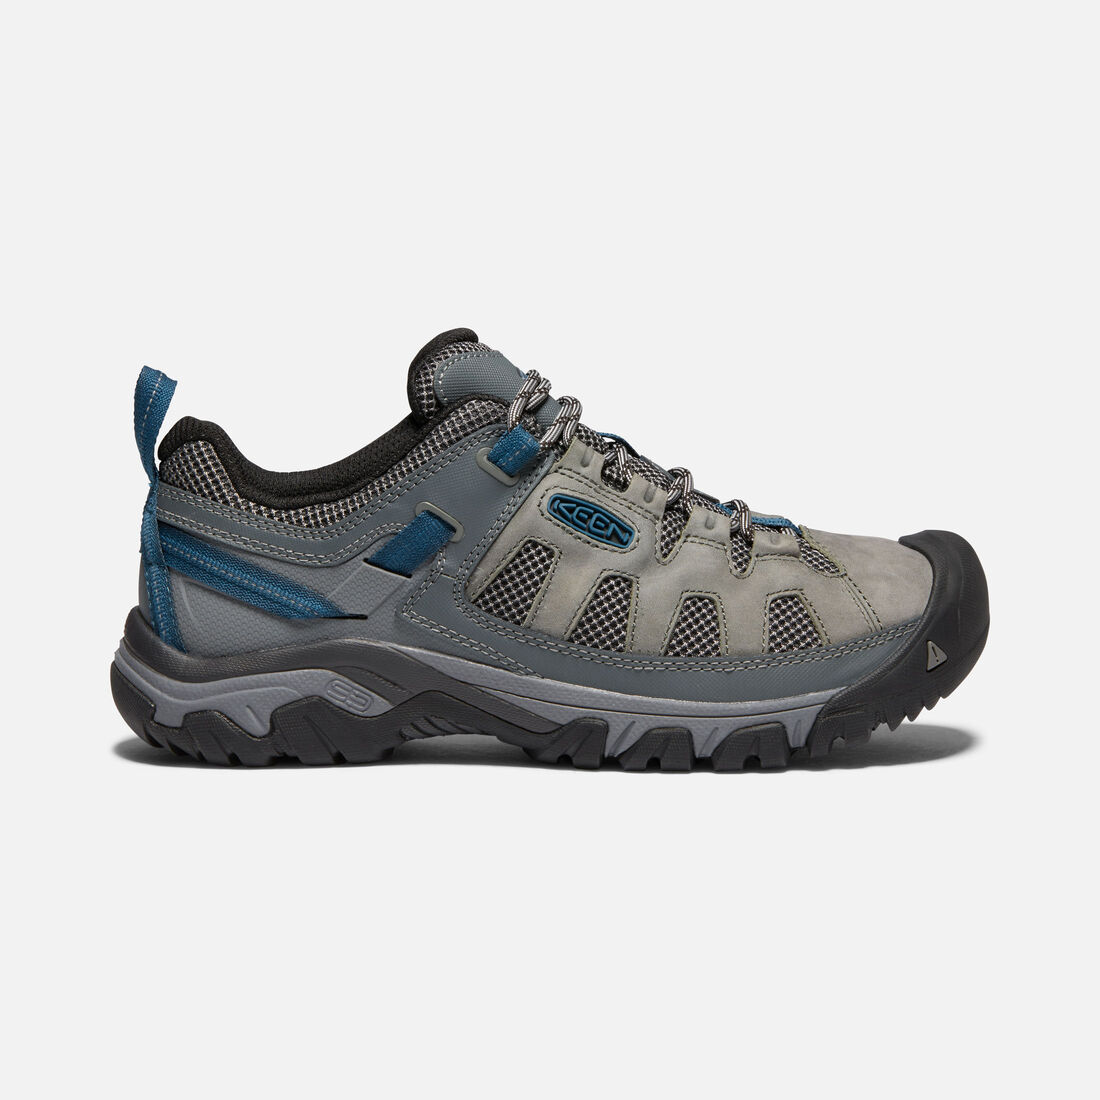 Men's TARGHEE VENT in BASALT/LEGION BLUE - large view.